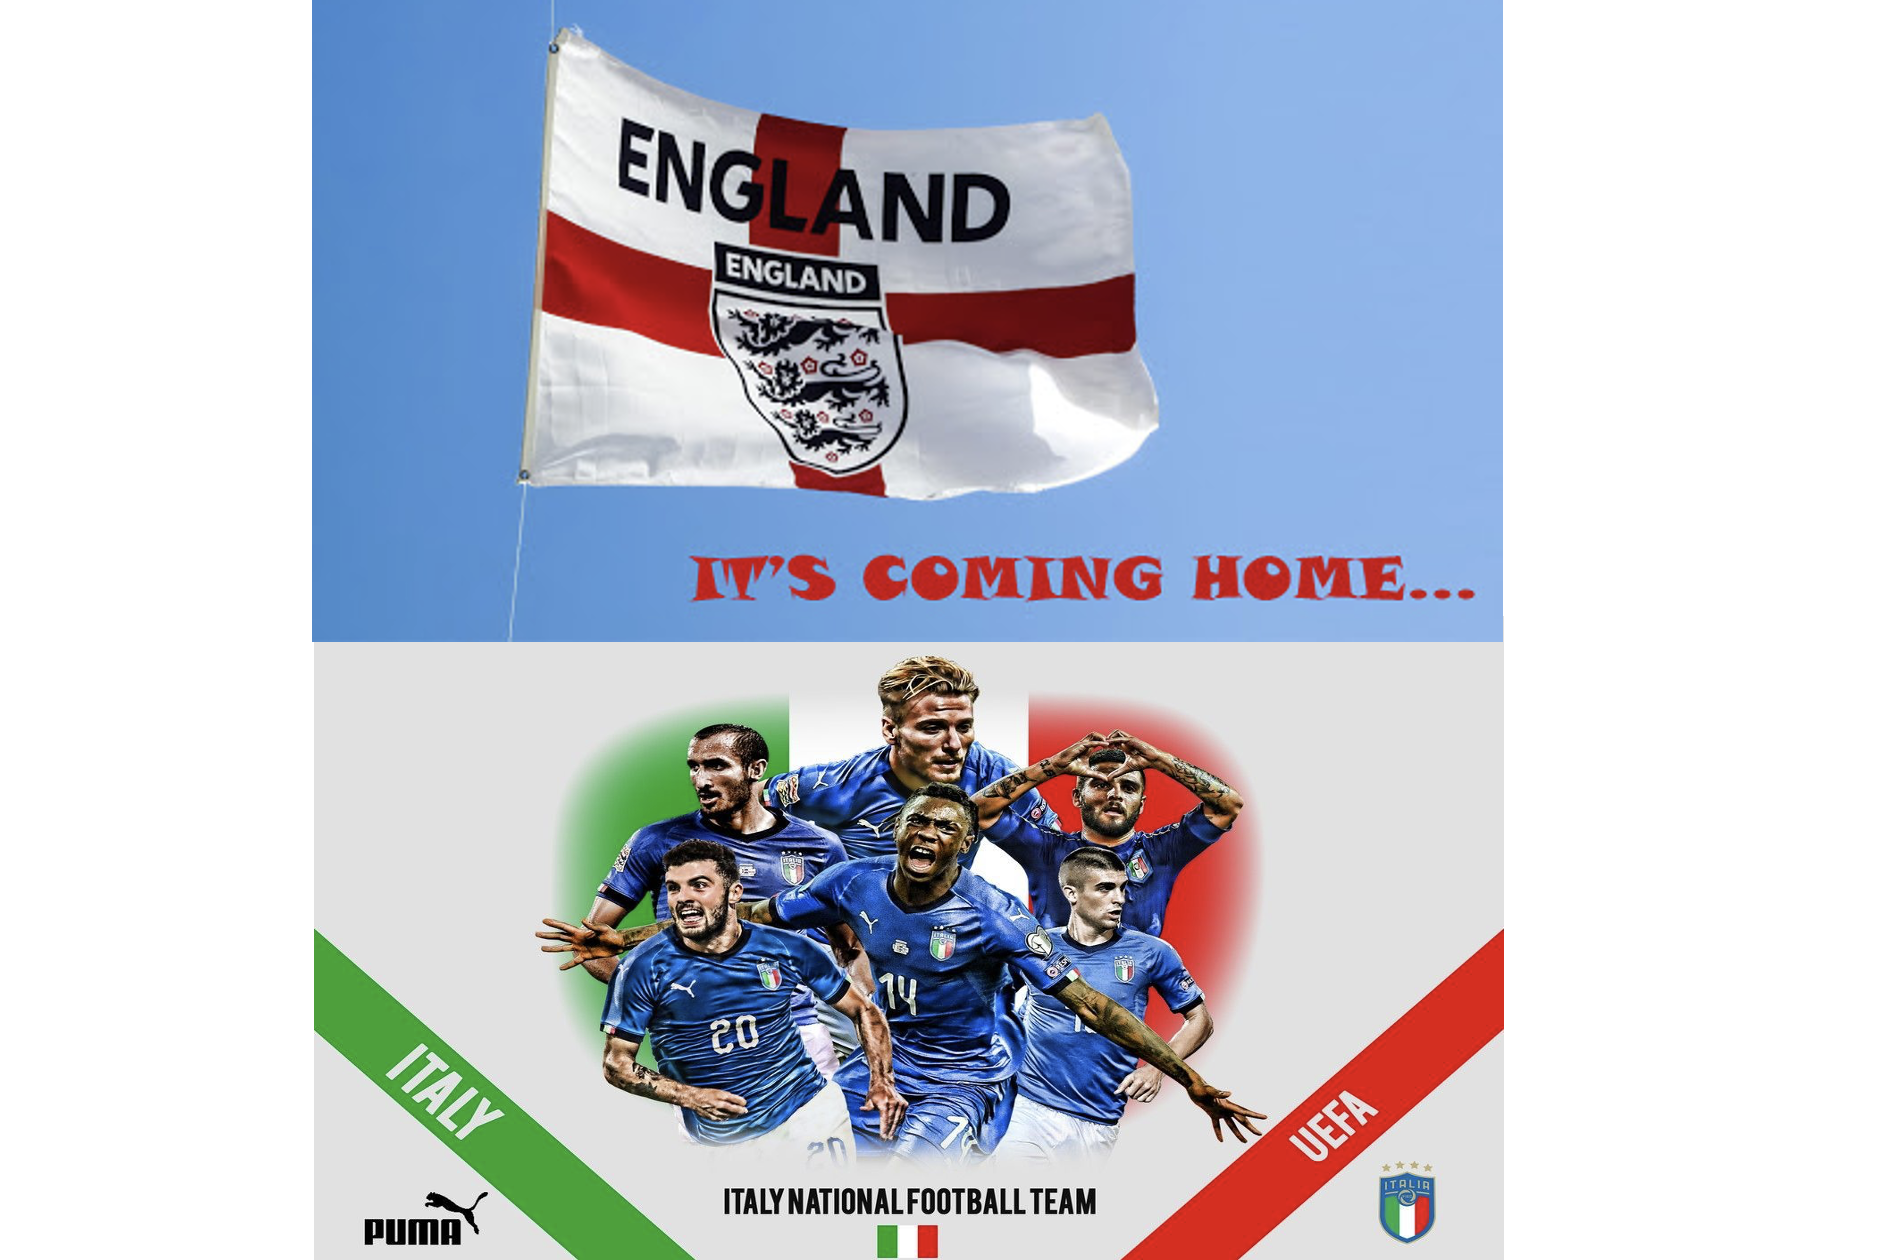 It's Coming Home to Bedfordshire